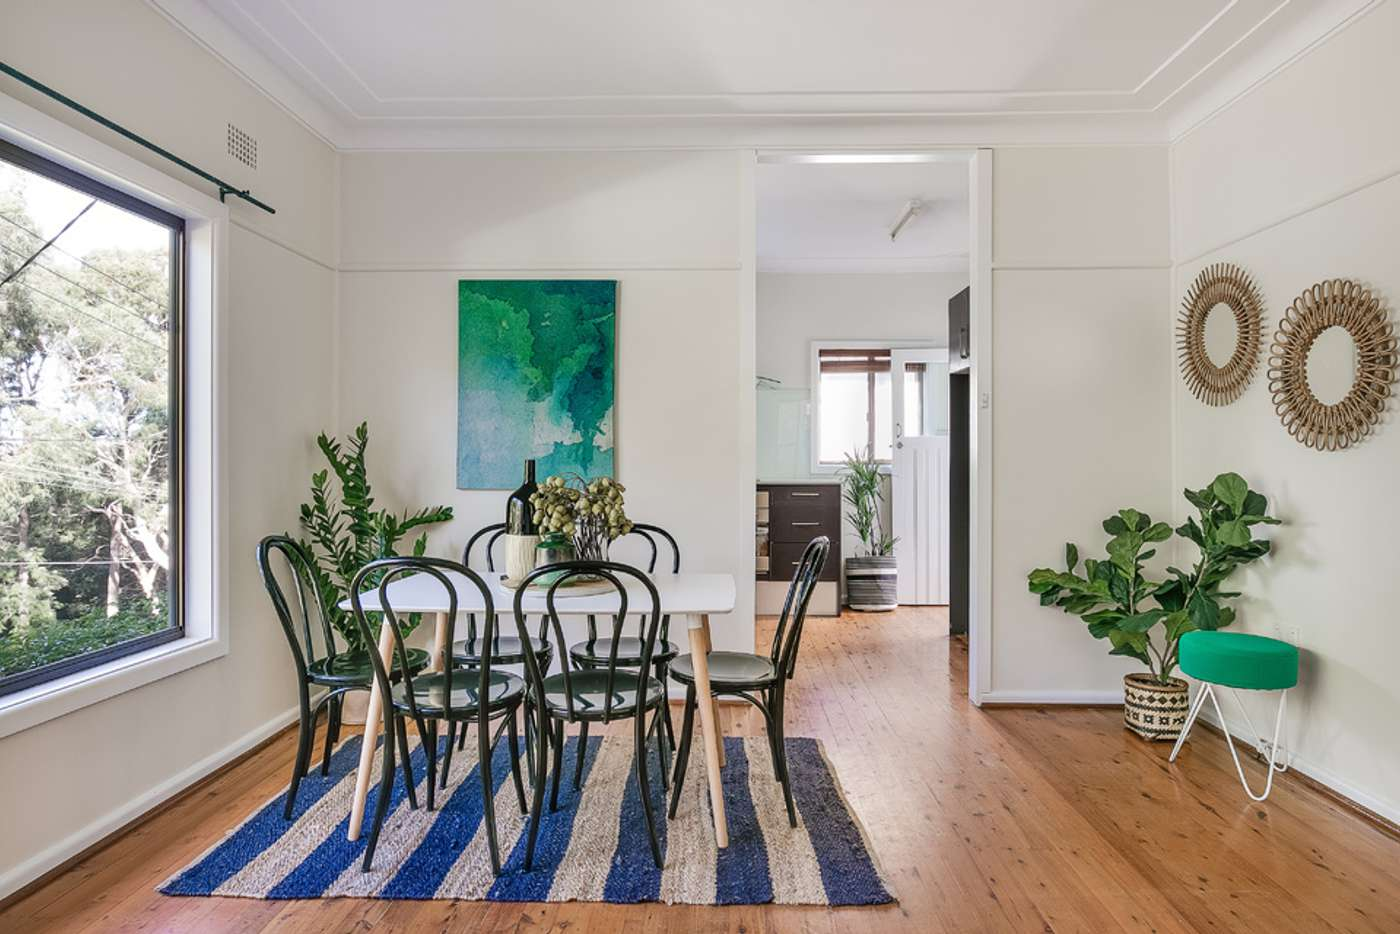 Main view of Homely house listing, 103 Clontarf Street, Seaforth NSW 2092